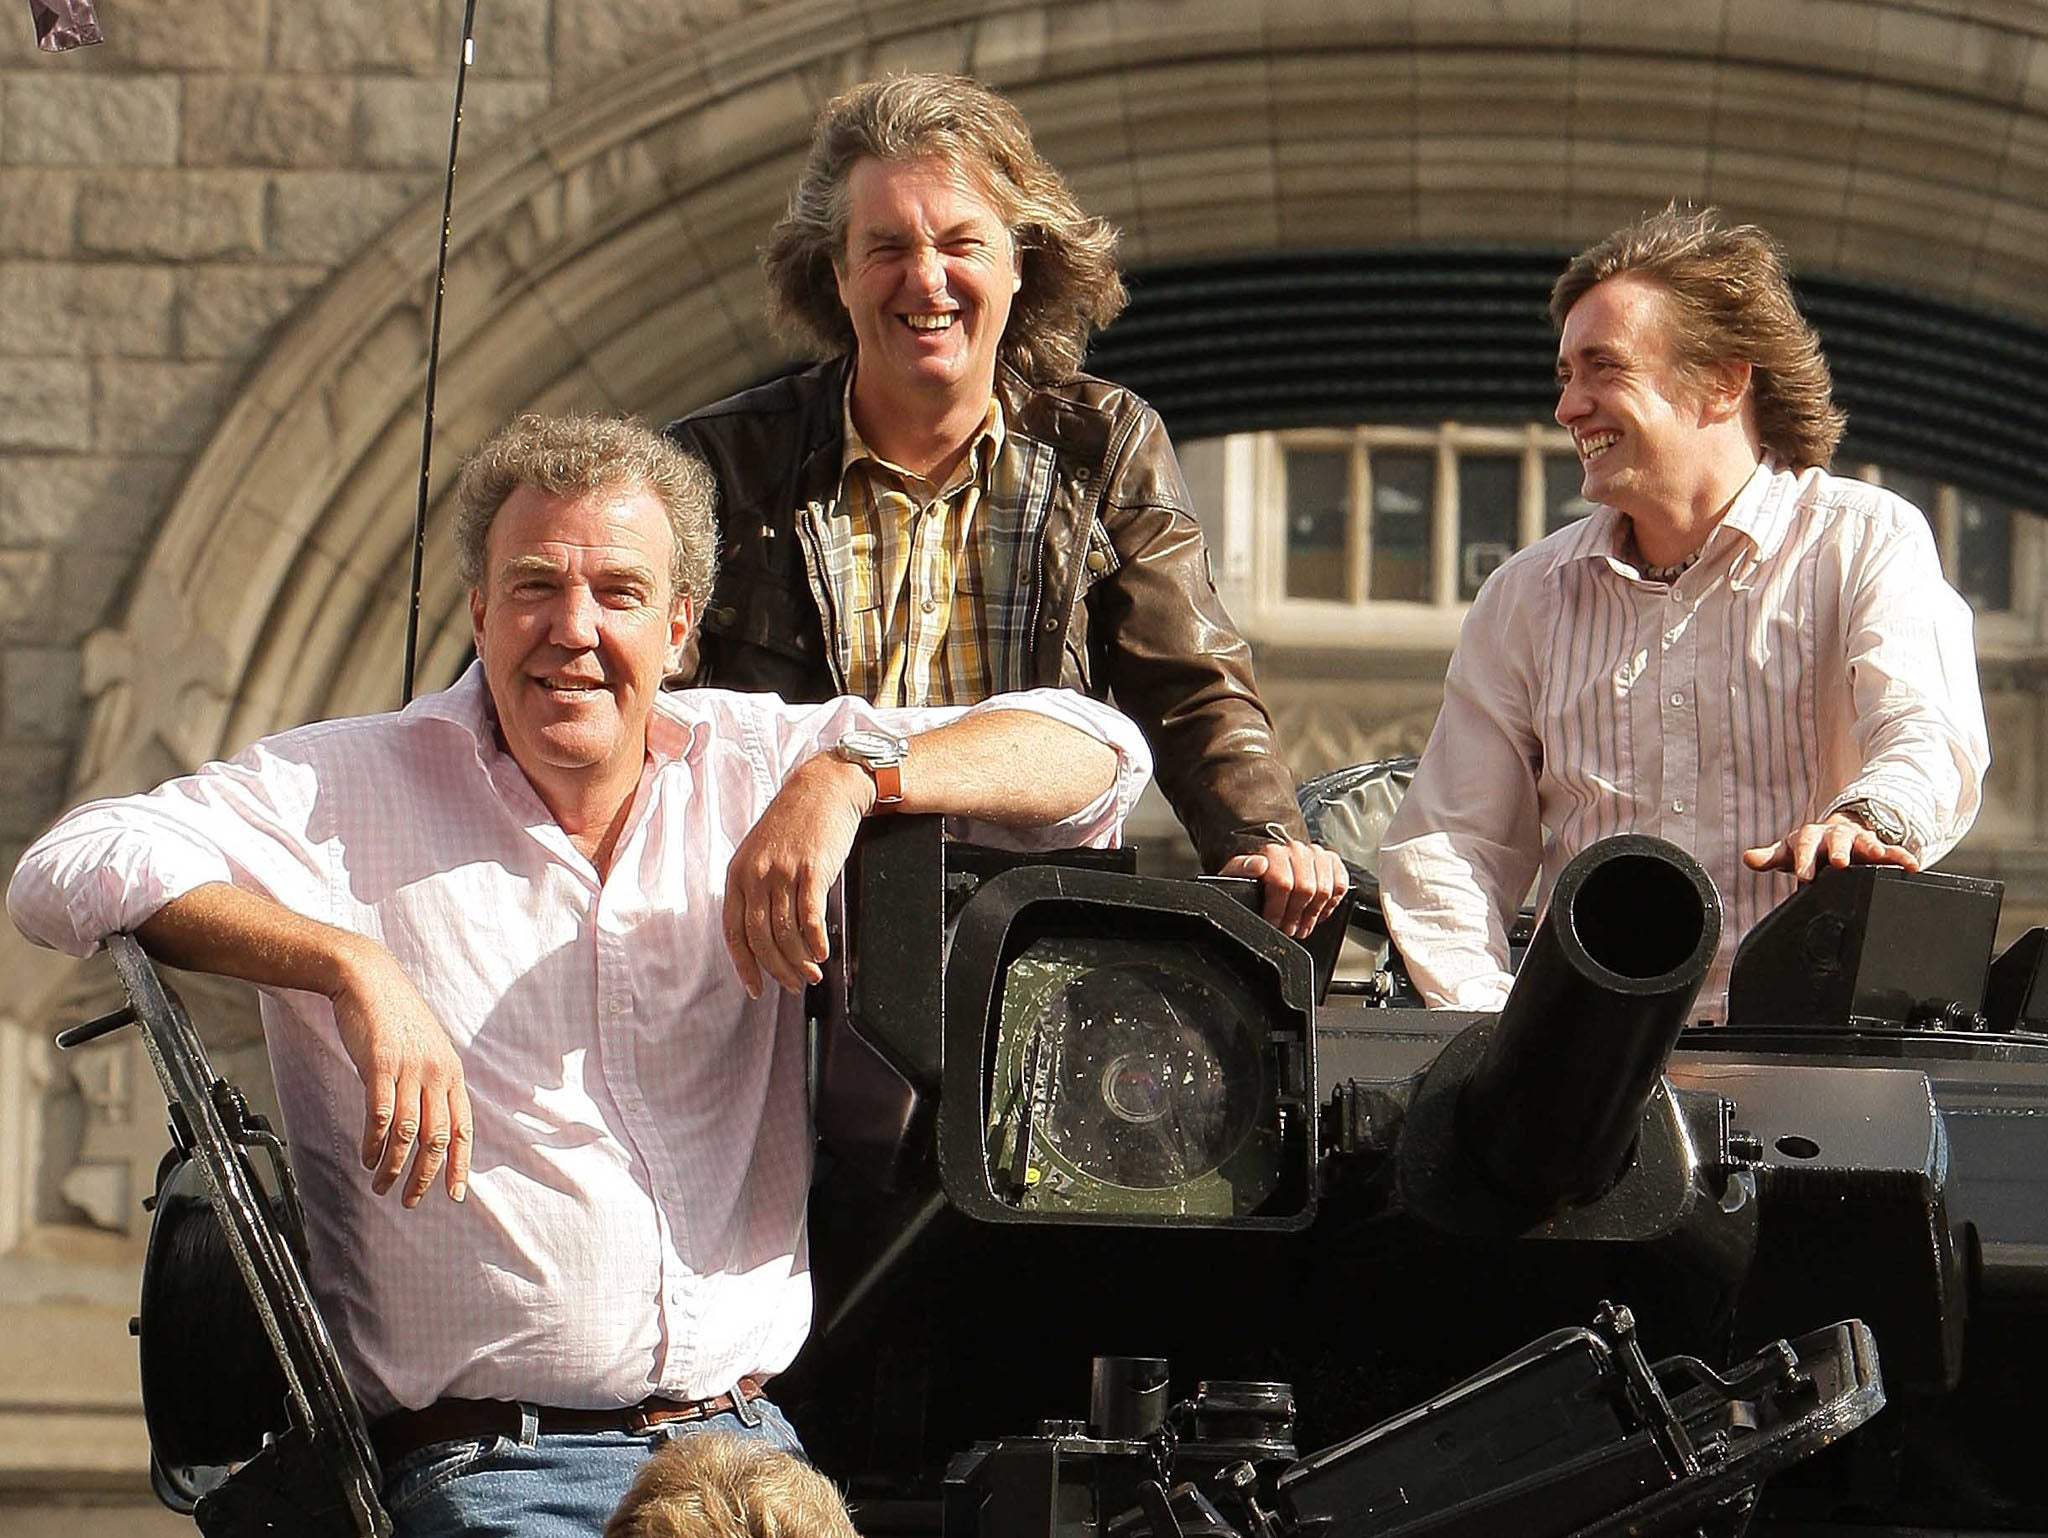 The grand tour jeremy clarkson hosted amazon primie car show to film first live audience in south africa the independent